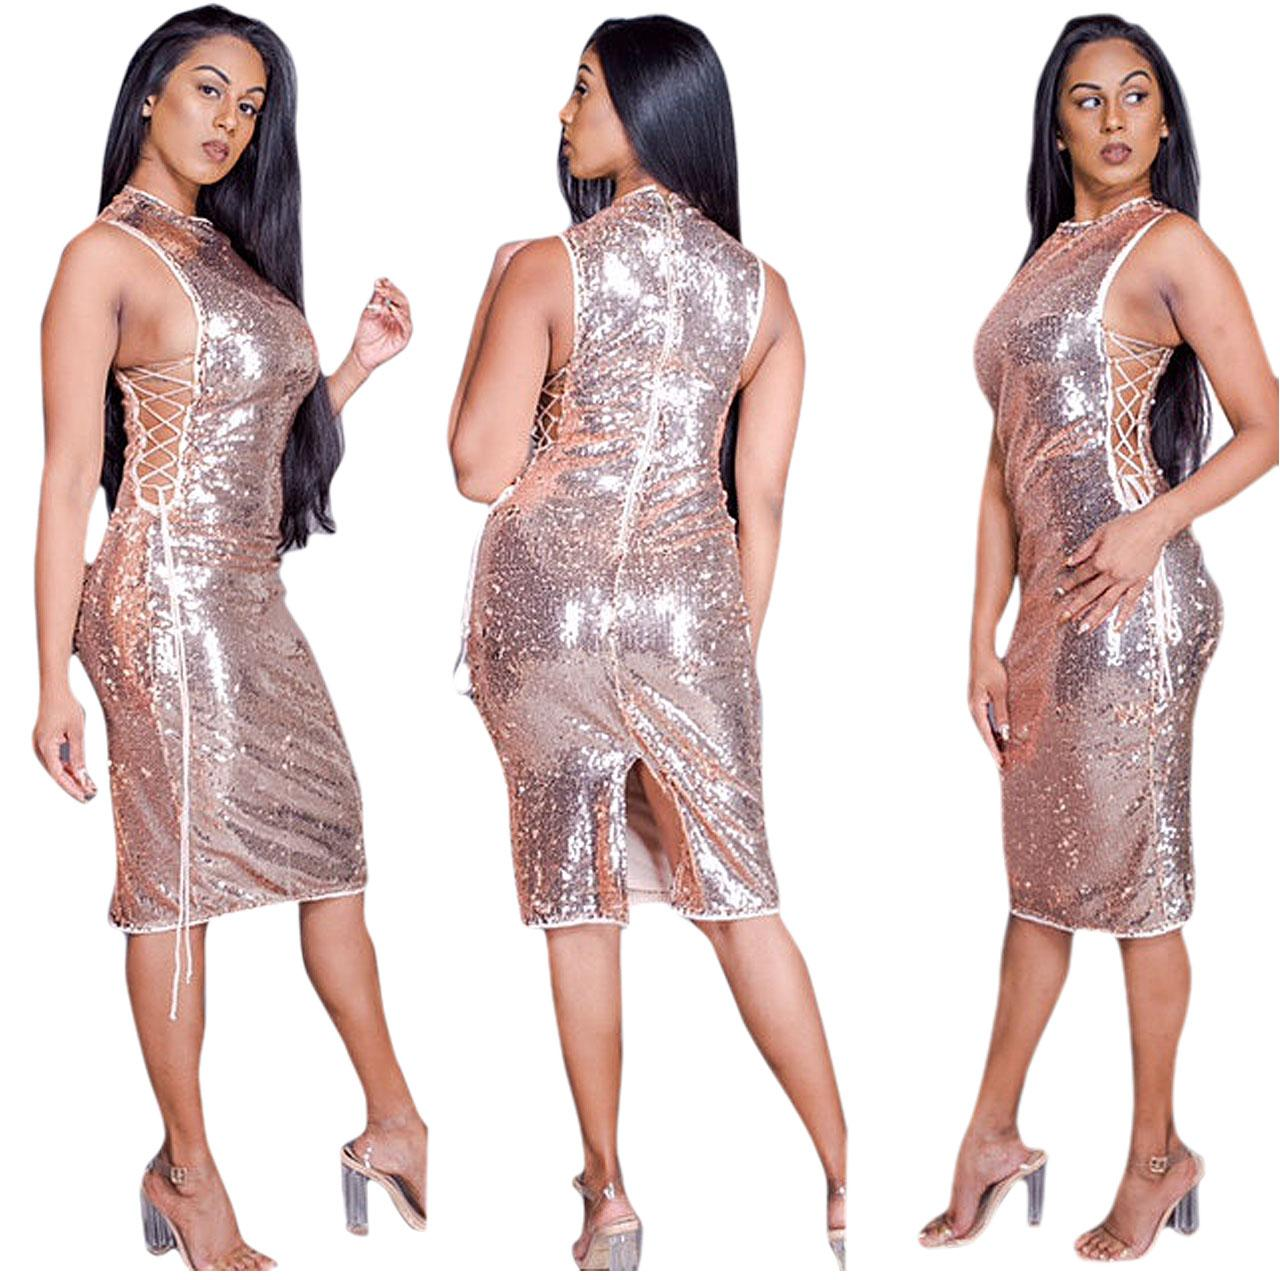 8d8550eeb3f0c 2019 Fashion Sexy Sequin Summer Dress Women Vestidos 2018 Gold Black V Neck  Backless Womens Luxury Nightclub Party Dresses Clothes 677 From Hengda999,  ...